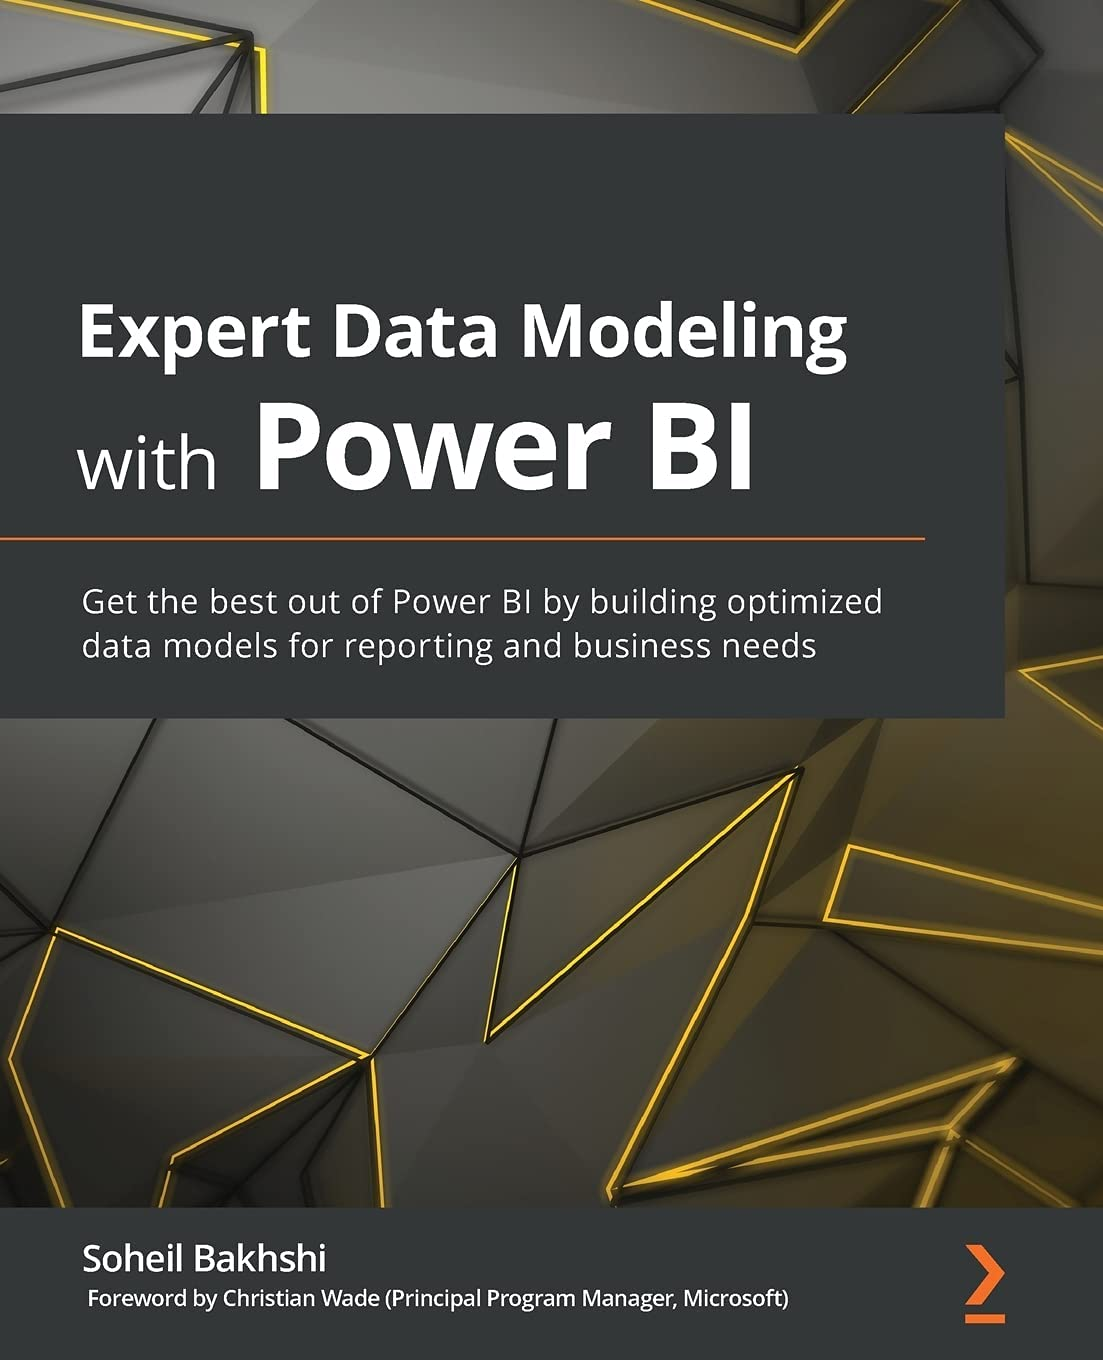 Expert Data Modeling with Power BI: Get the best out of Power BI by building optimized data models for reporting and business needs